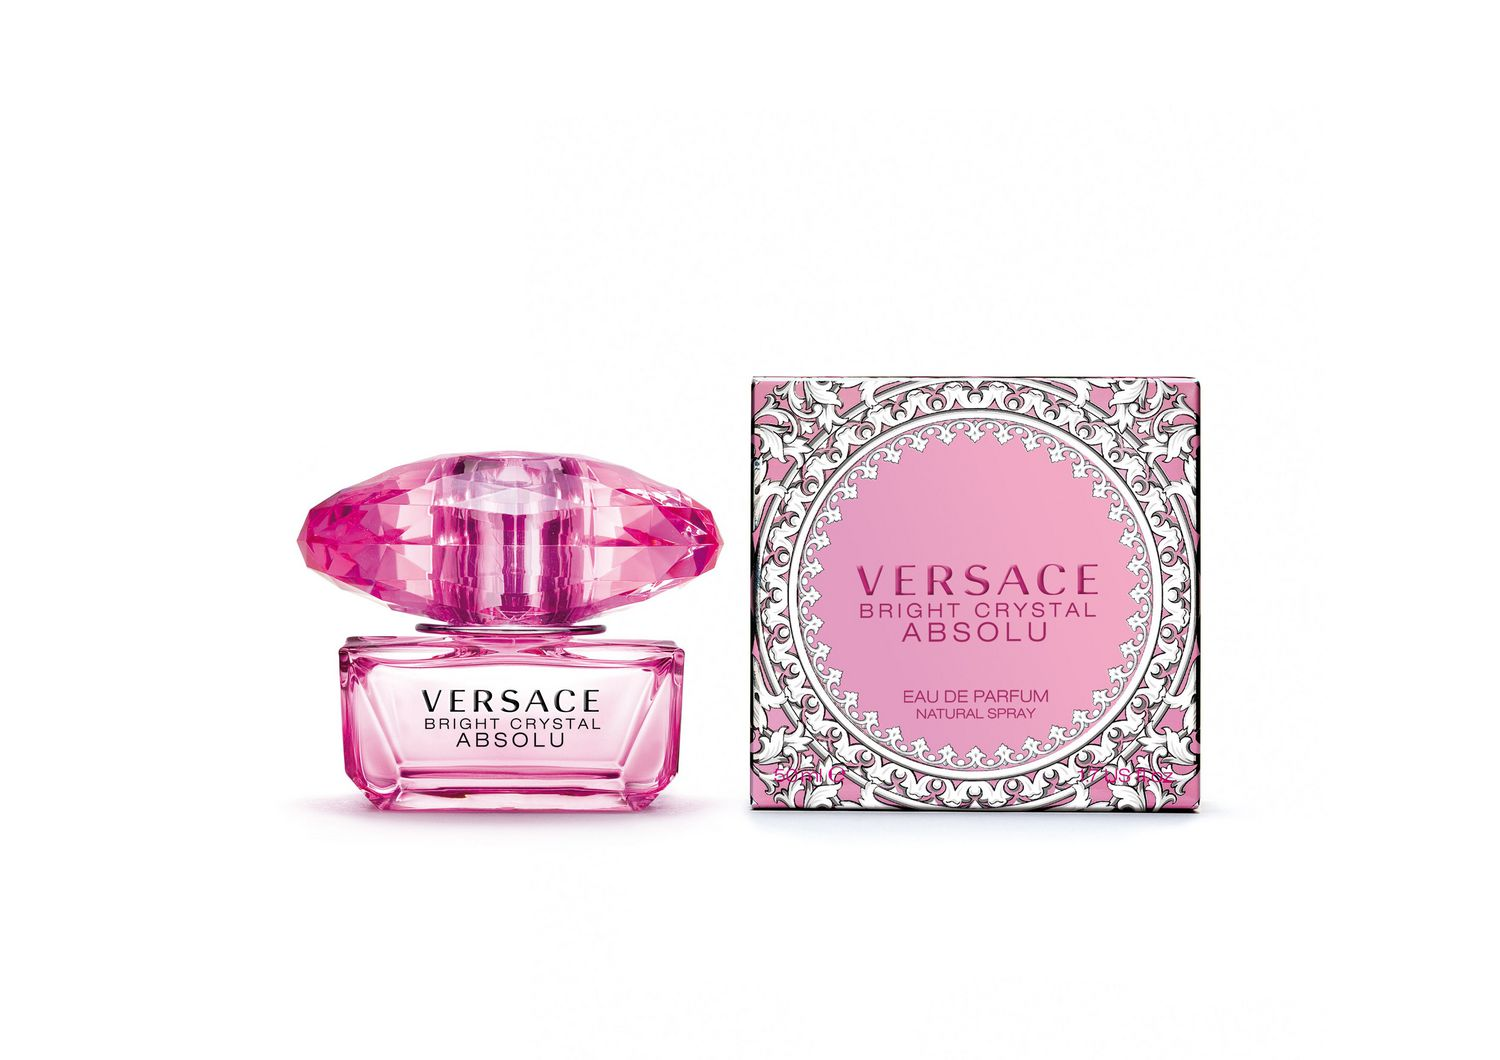 f4a4b48afc Versace Bright Crystal Absolu Eau De Parfum Spray for Women 50 ml - image 1  of zoomed image